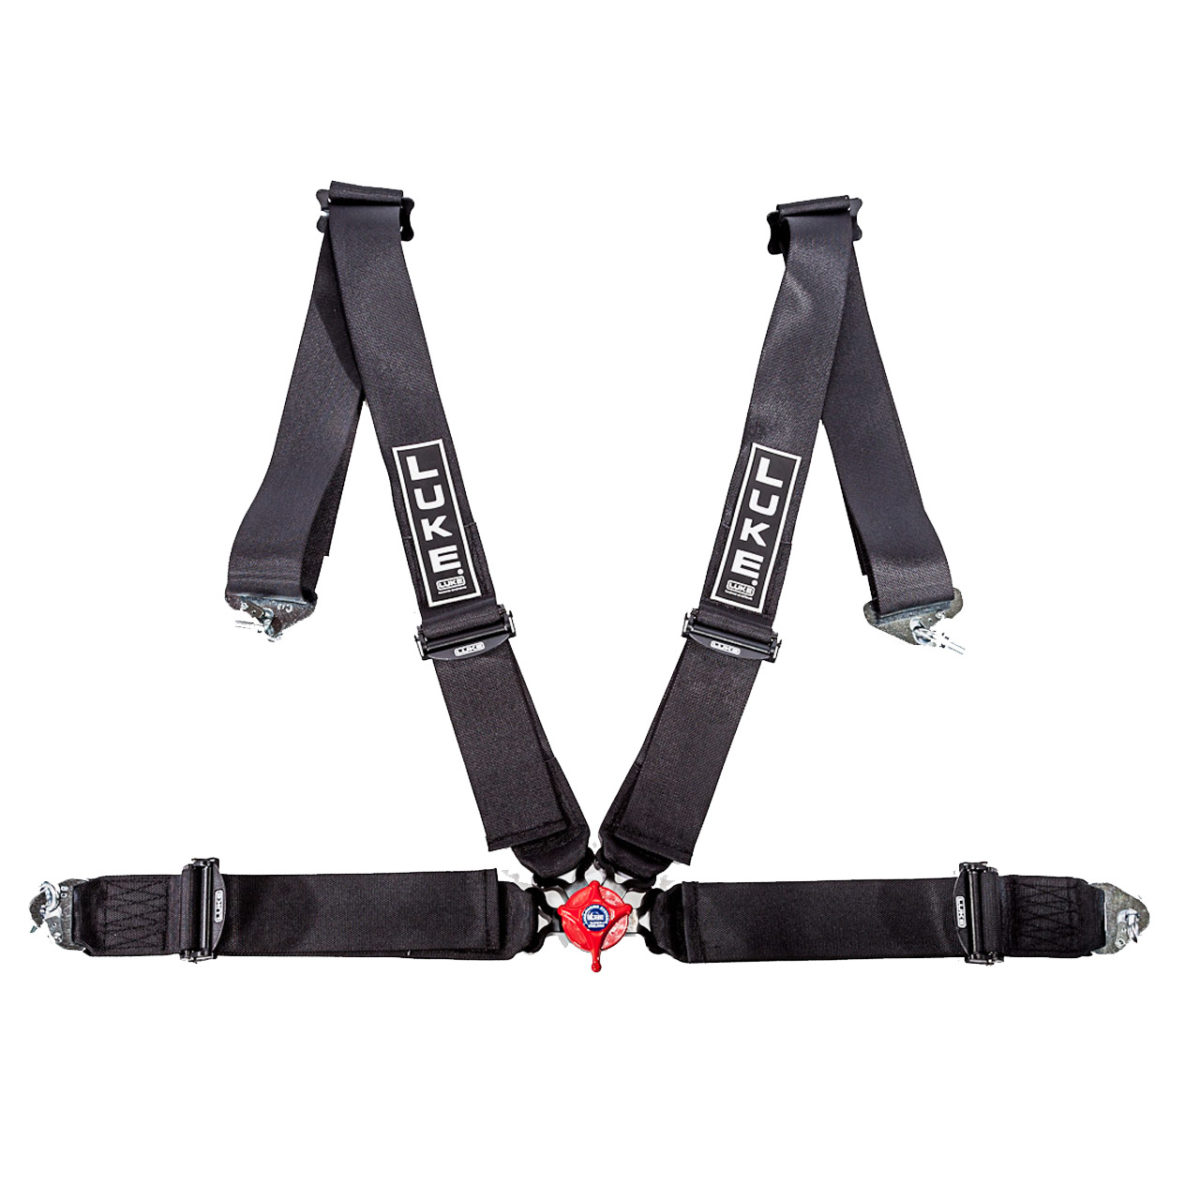 LUKE 4-Point Racing Harness in Black (2004)